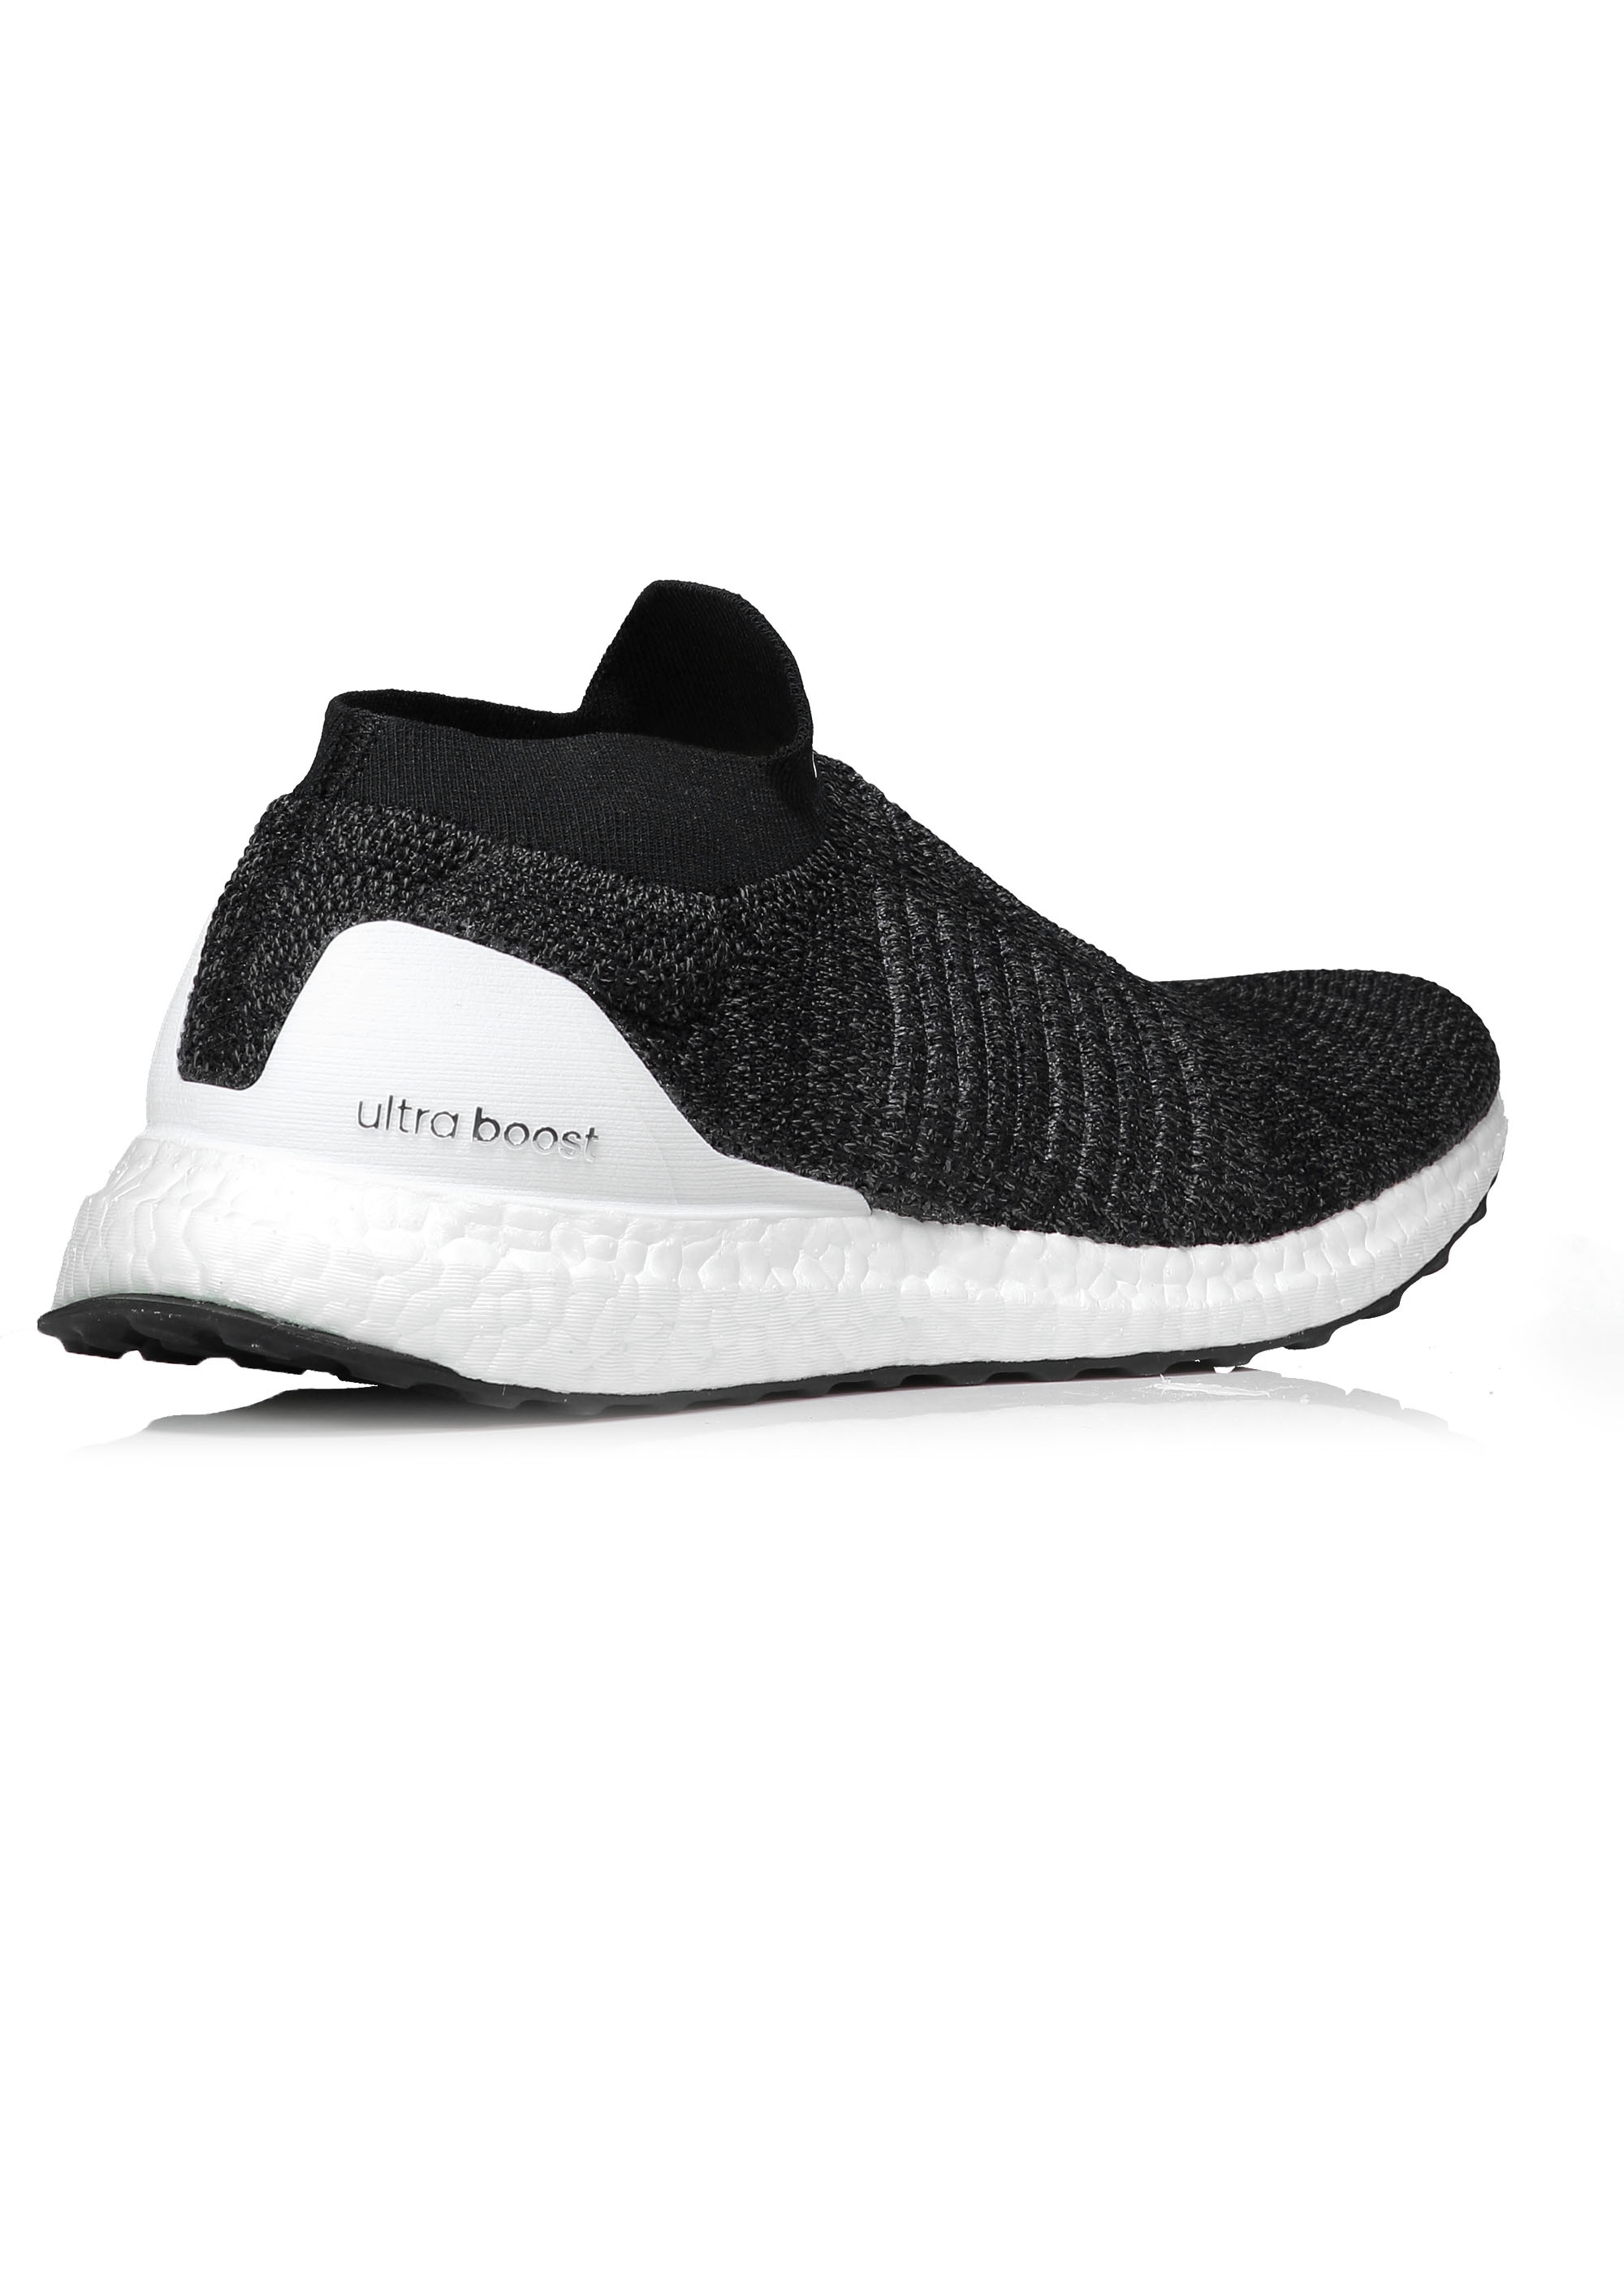 45d2cc096ab6c adidas Originals Footwear Ultra Boost Laceless - Black - Trainers ...